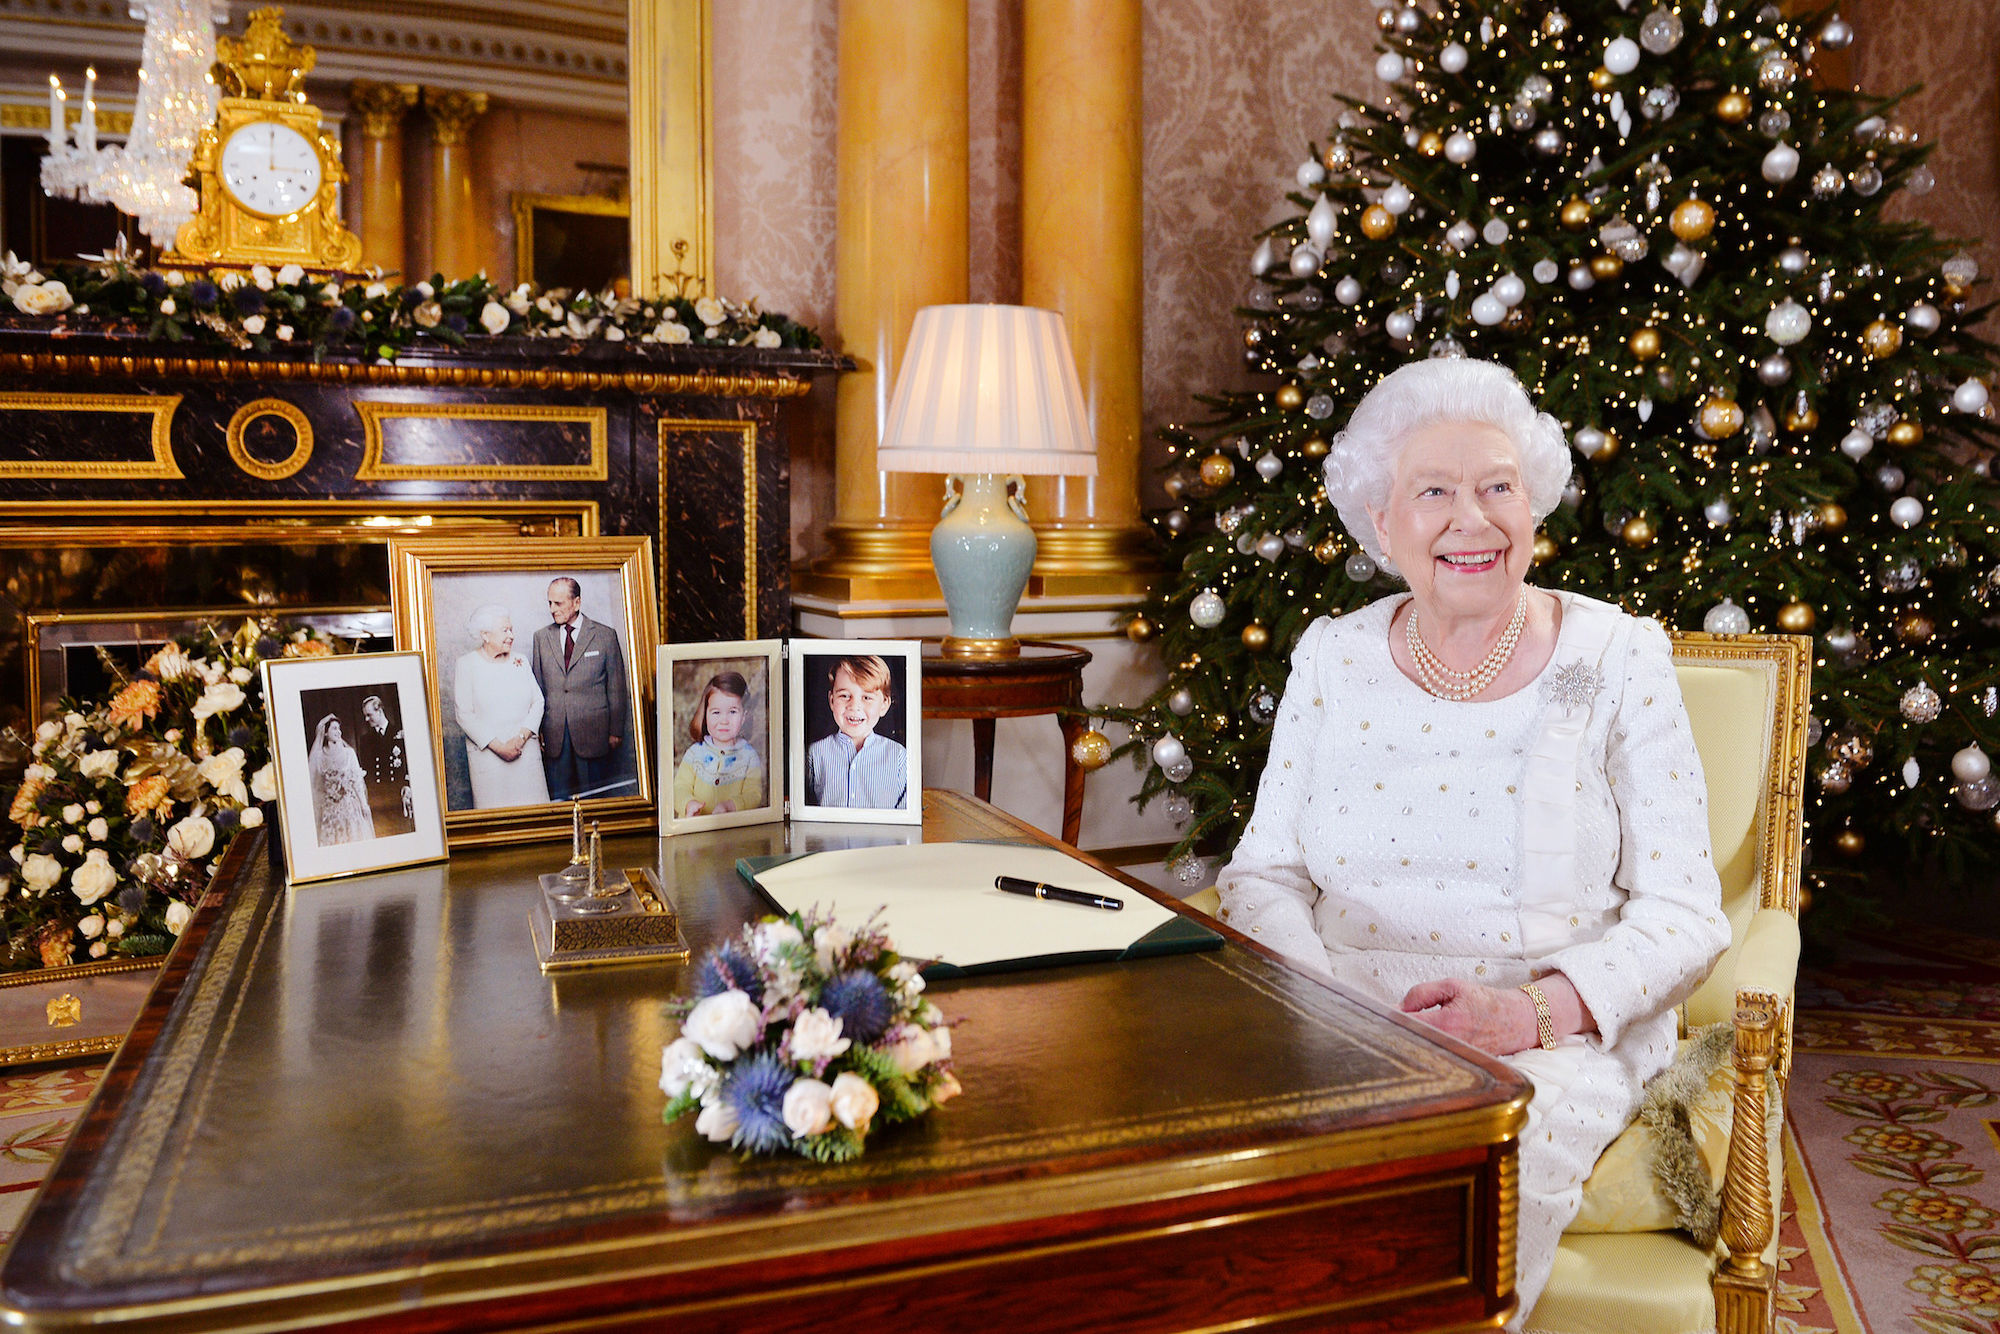 The Royal Family's Christmas Tree Is Just as Extra as You'd Expect